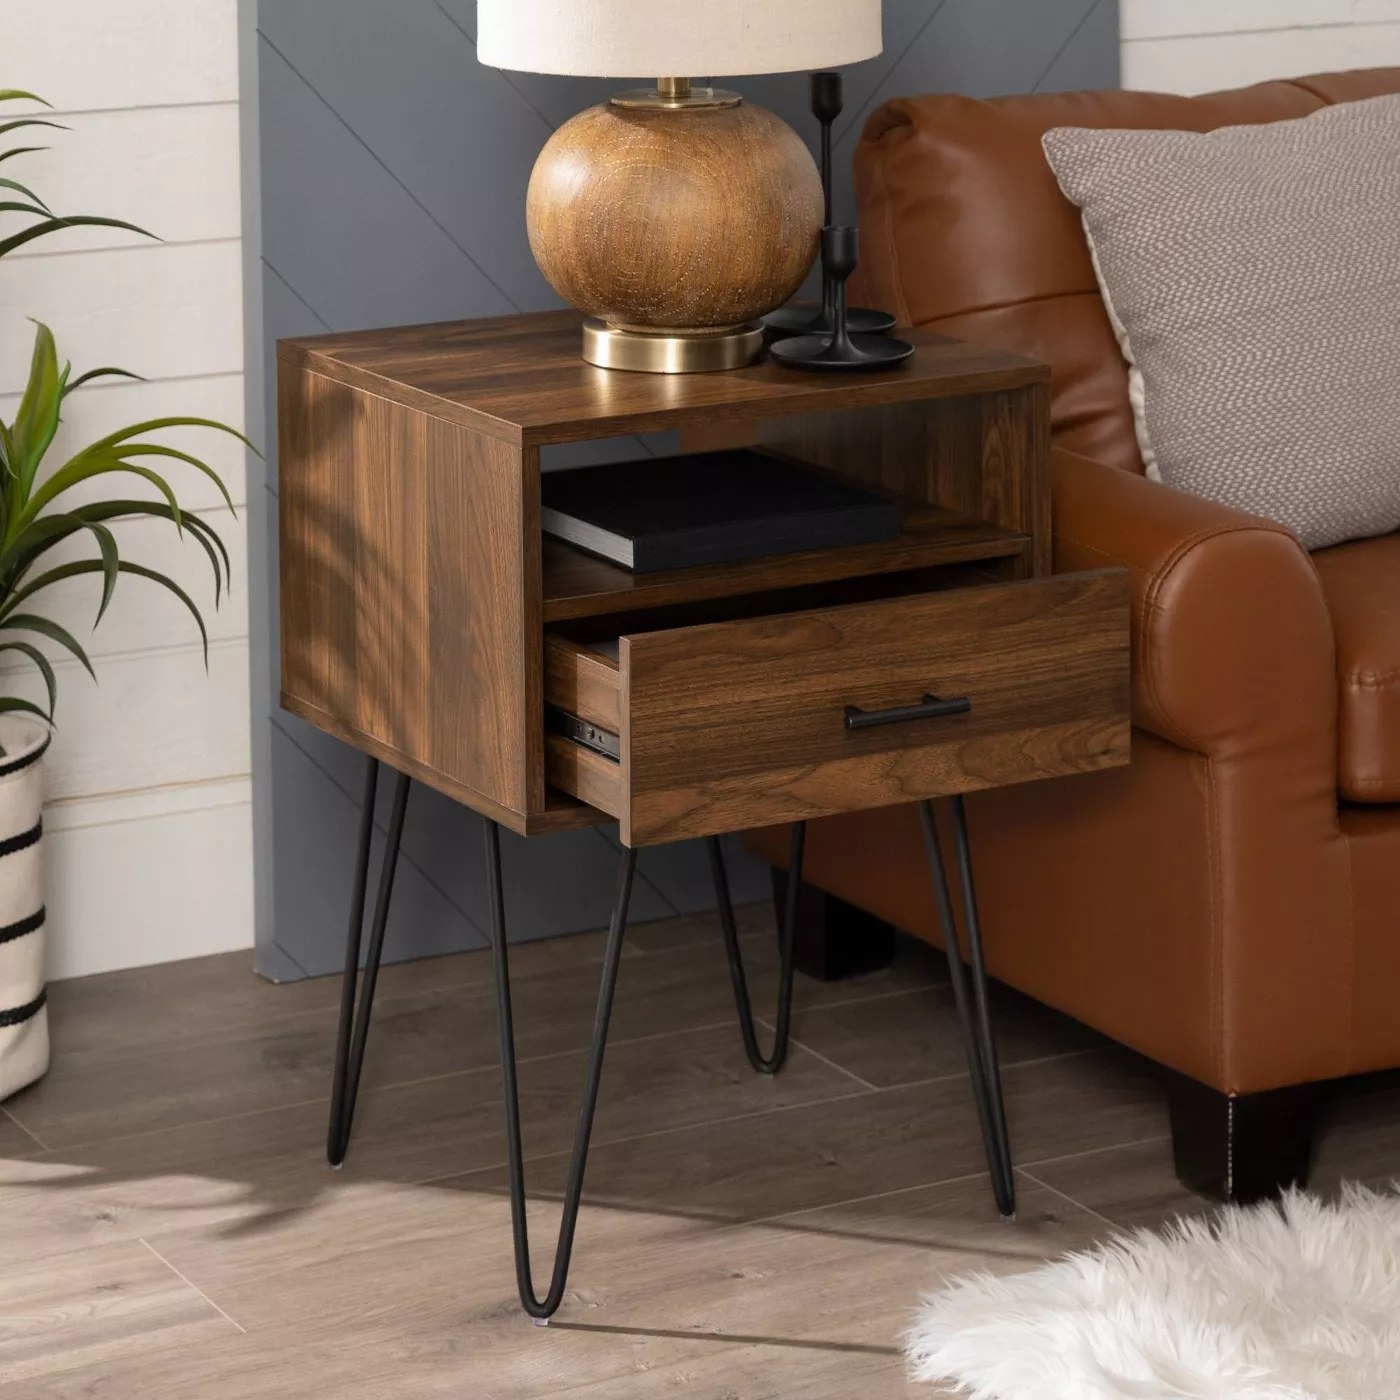 The side table in dark walnut